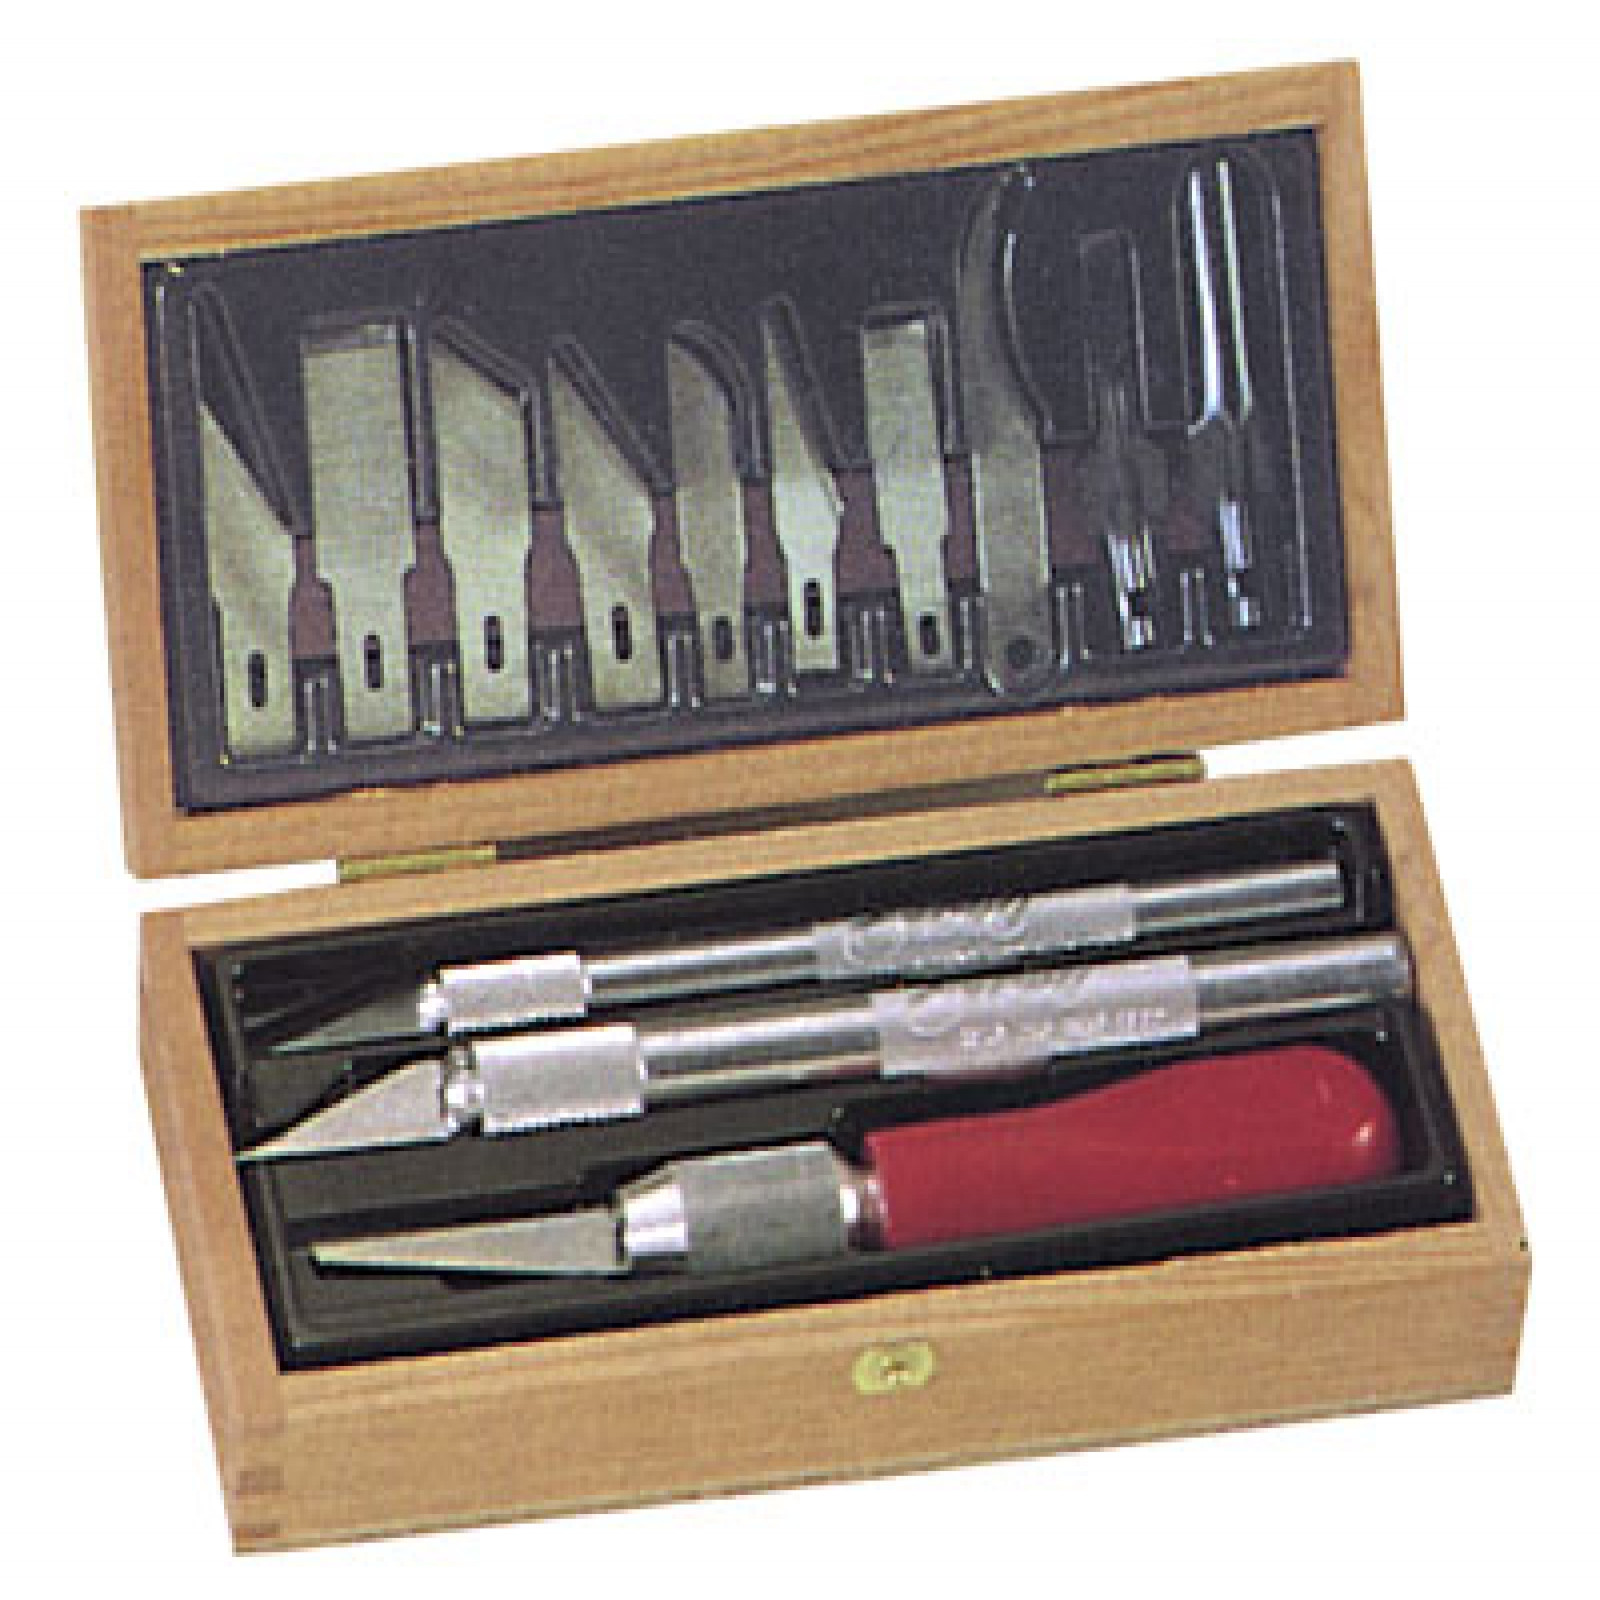 EXCEL NO.44290 PROFESSIONAL WOODCARVING SET IN WOOD BOX